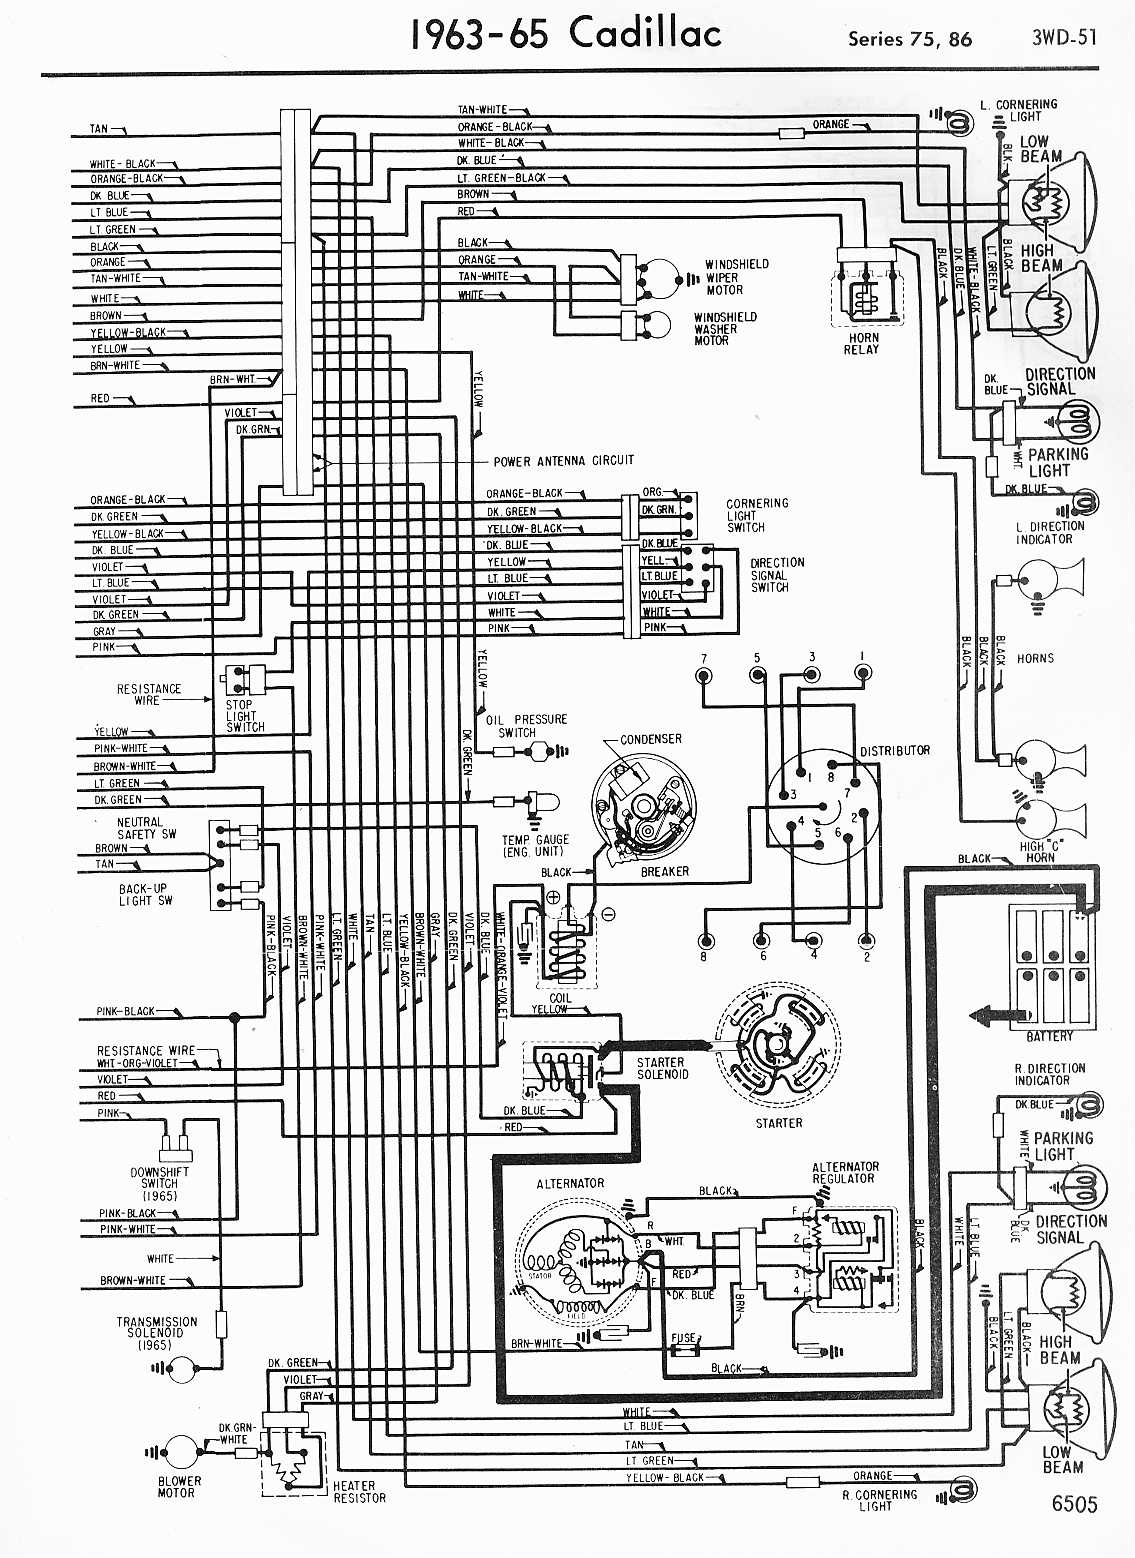 MWireCadi65_3WD 051 cadillac wiring harness ram truck wiring harness \u2022 wiring diagrams  at reclaimingppi.co